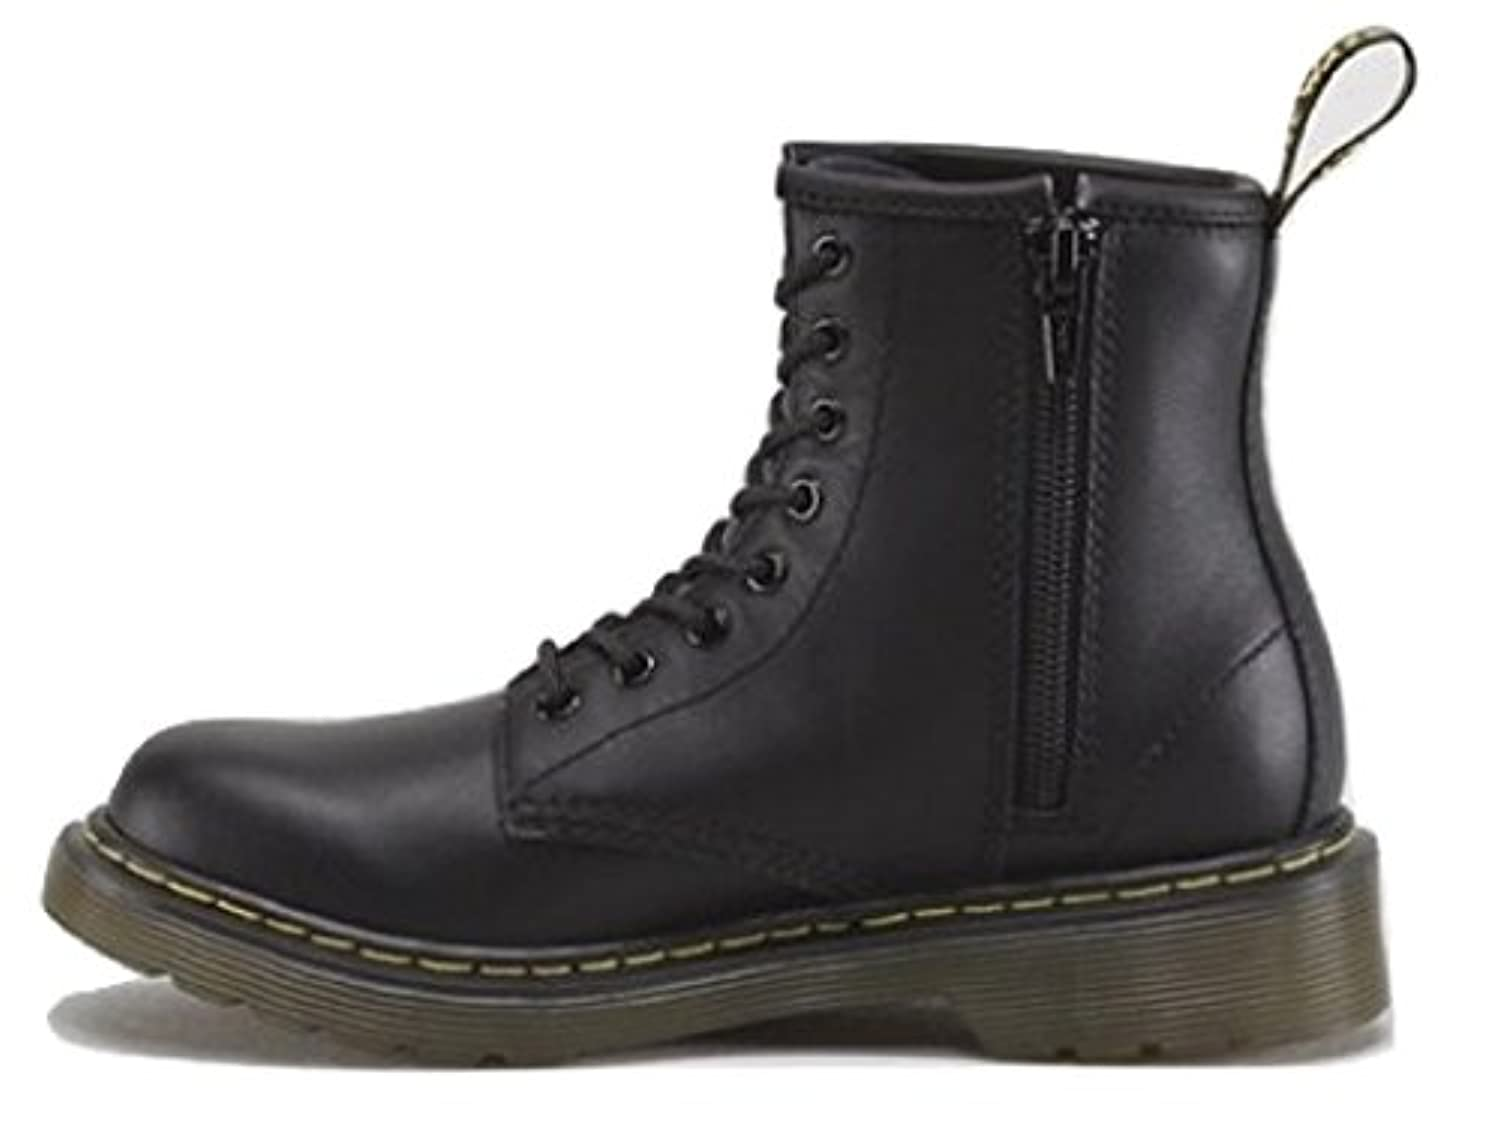 Dr Martens - Brooklee Delaney; Infants / Juniors / Kids Leather Upper, Lace Up Casual / Fashion Boots with Side Zip and Air-Cushioned Sole